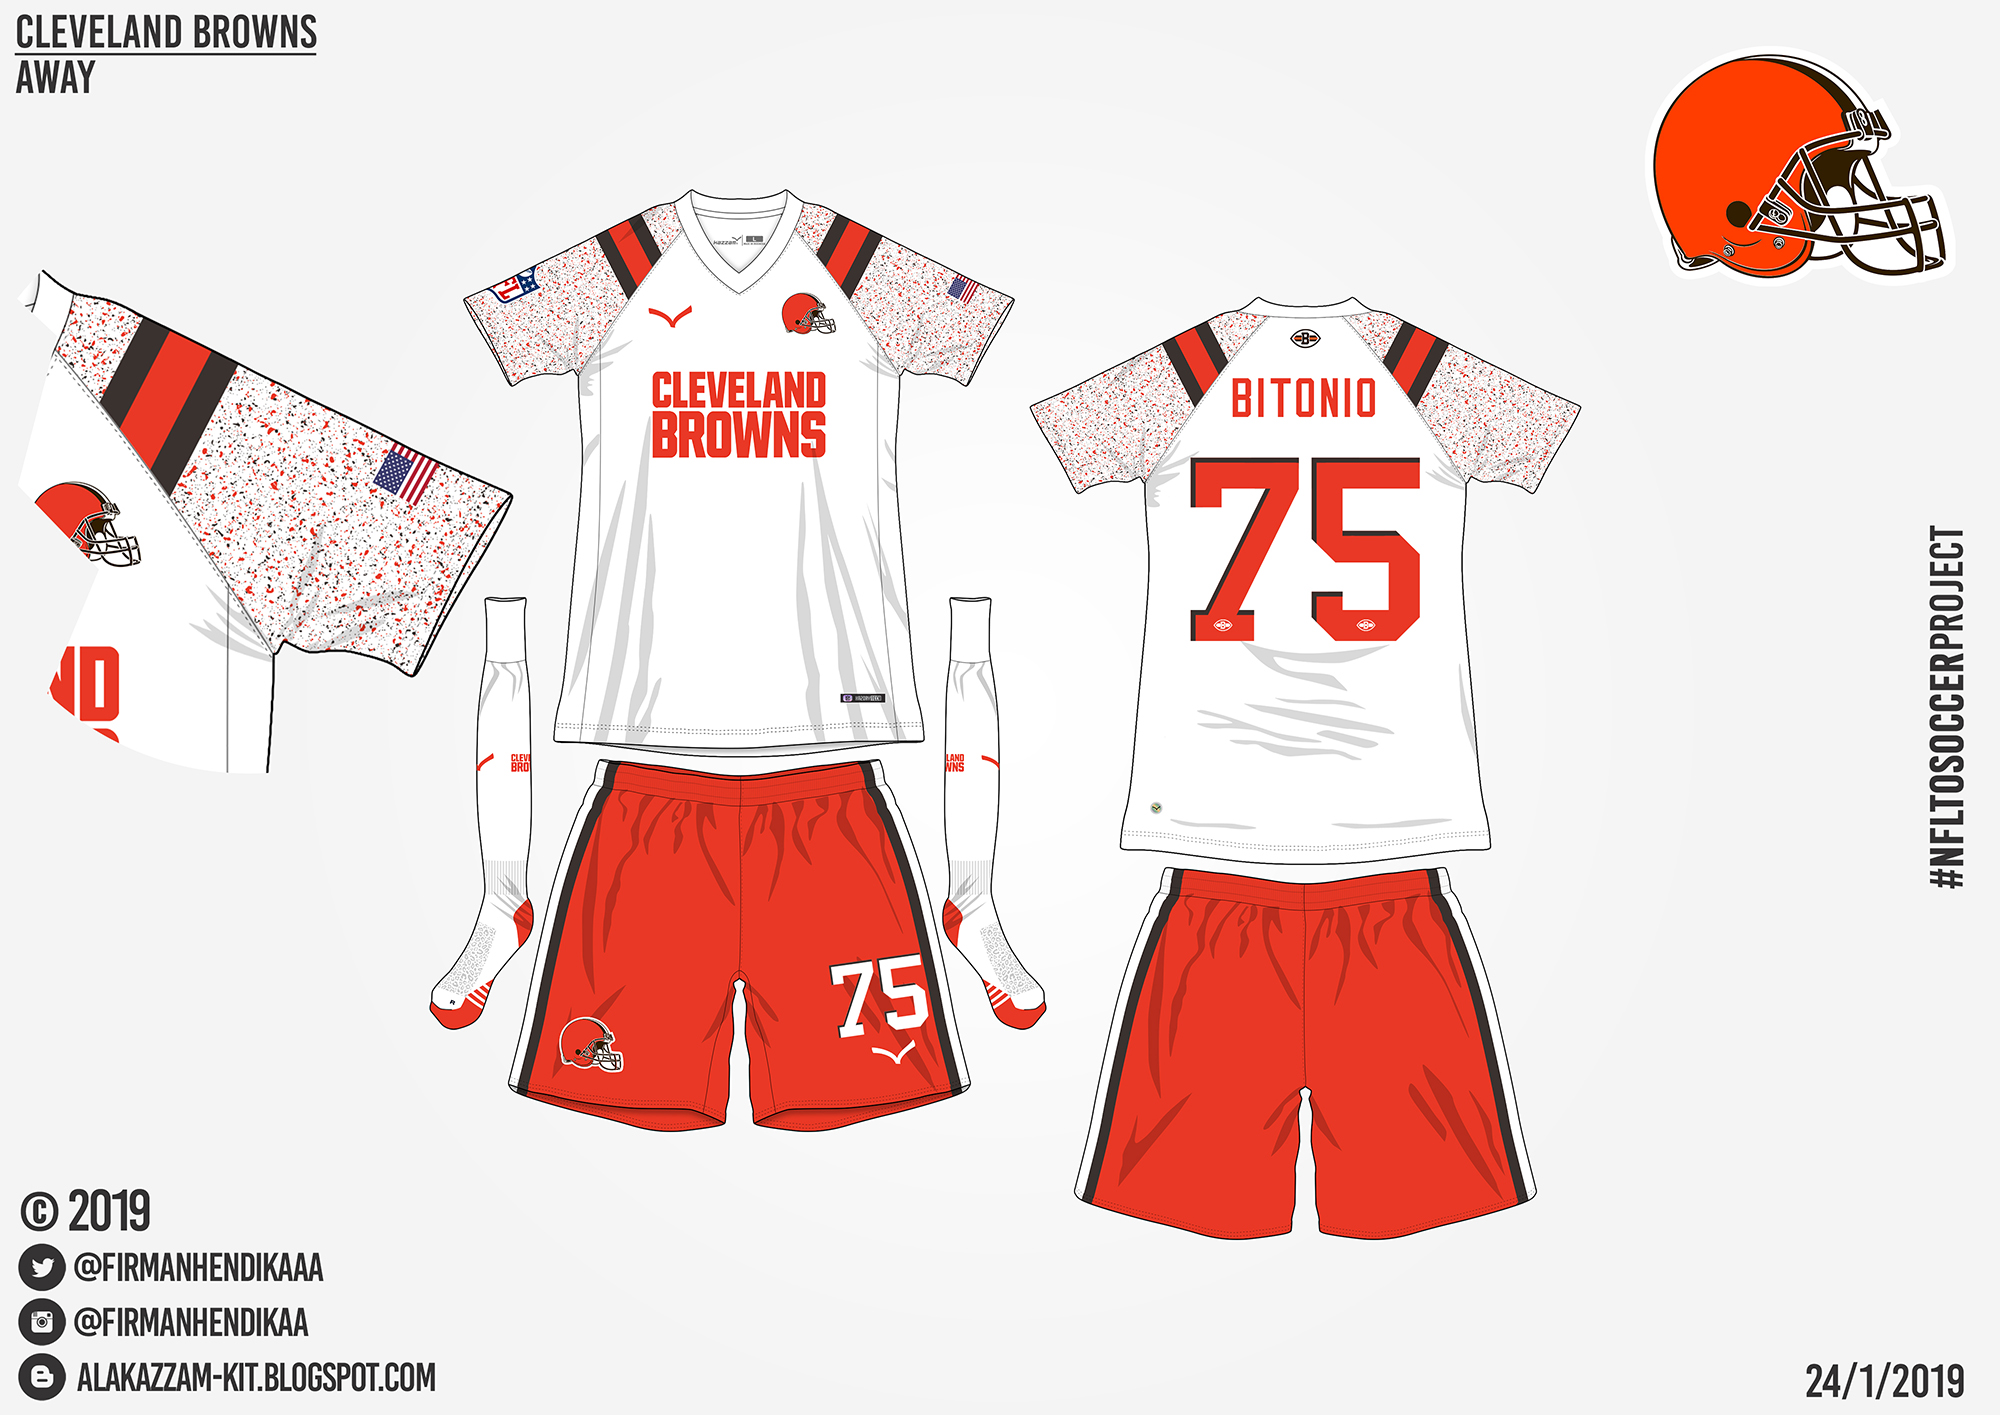 quality design e2c88 b11a2 NFLtoSoccerProject - Cleveland Browns (Away)